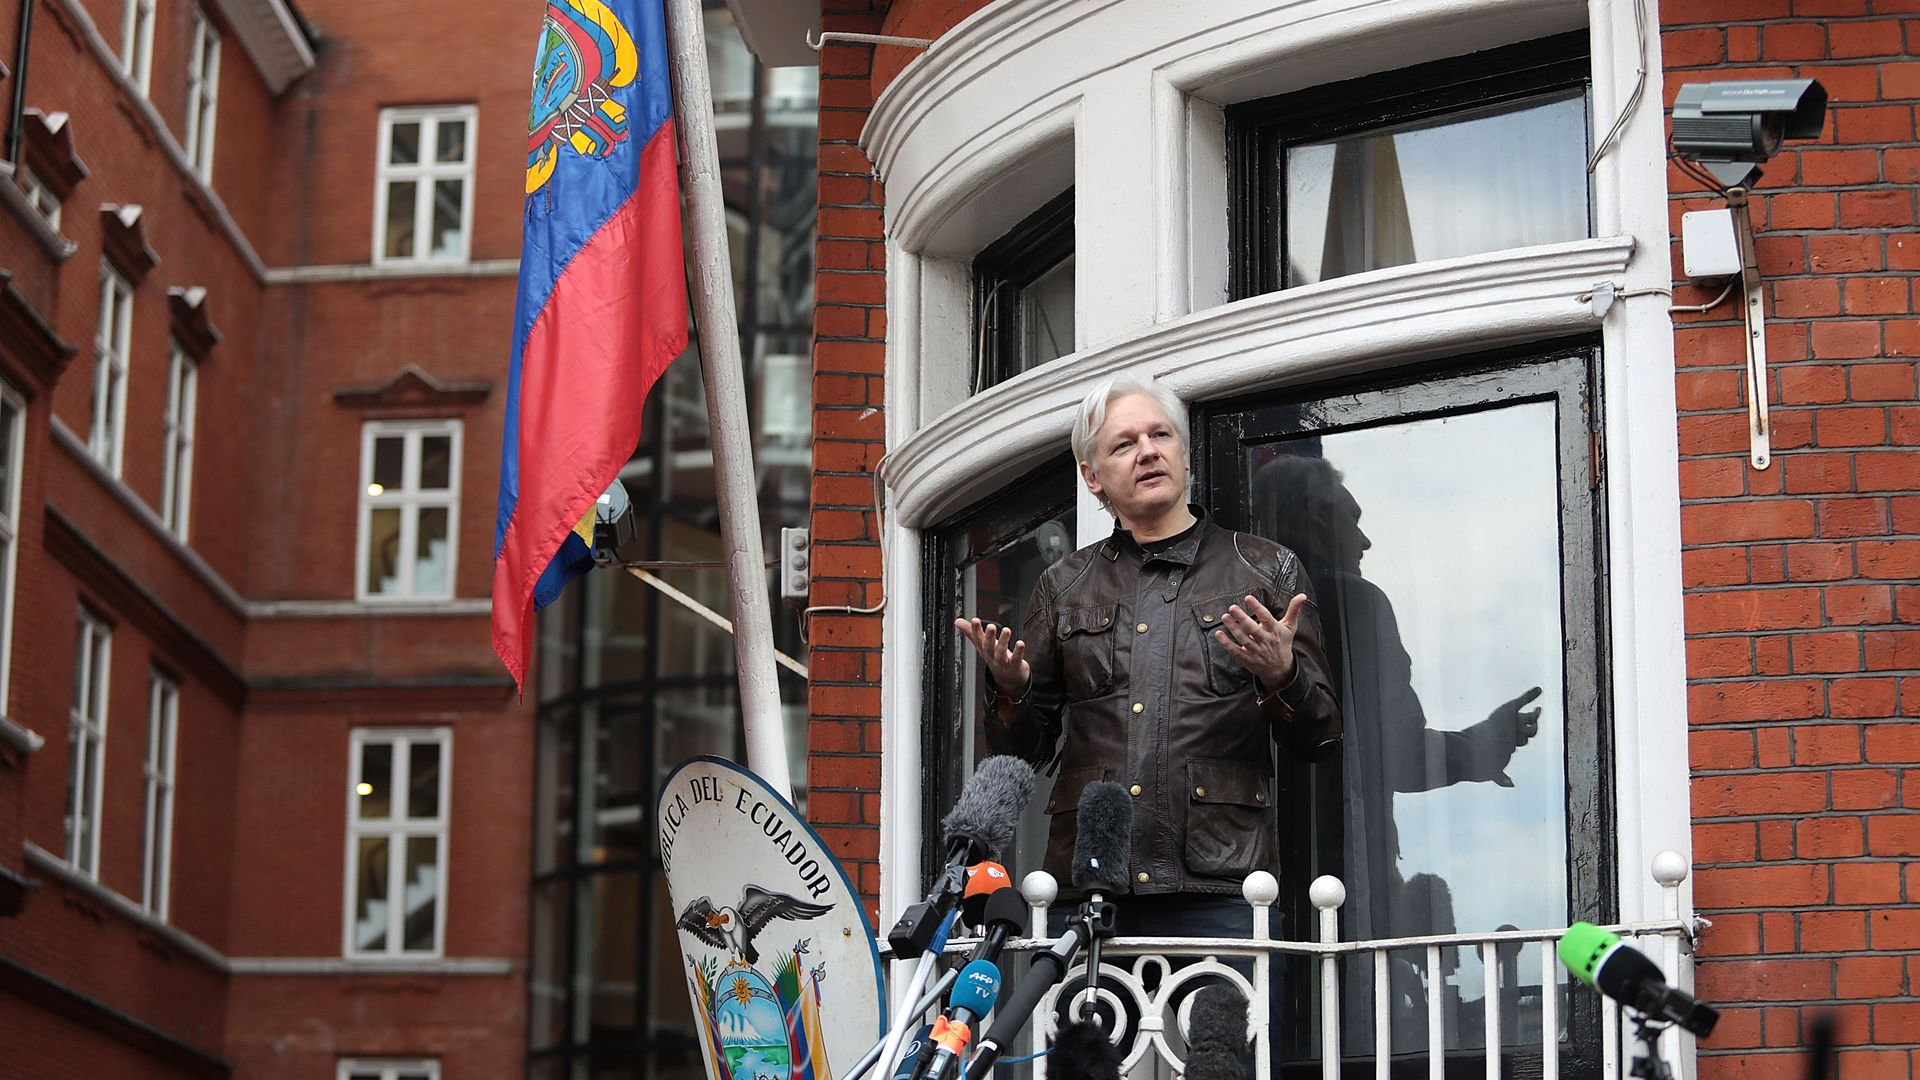 Julian Assange on the balcony of the Ecuadorean Embassy in London